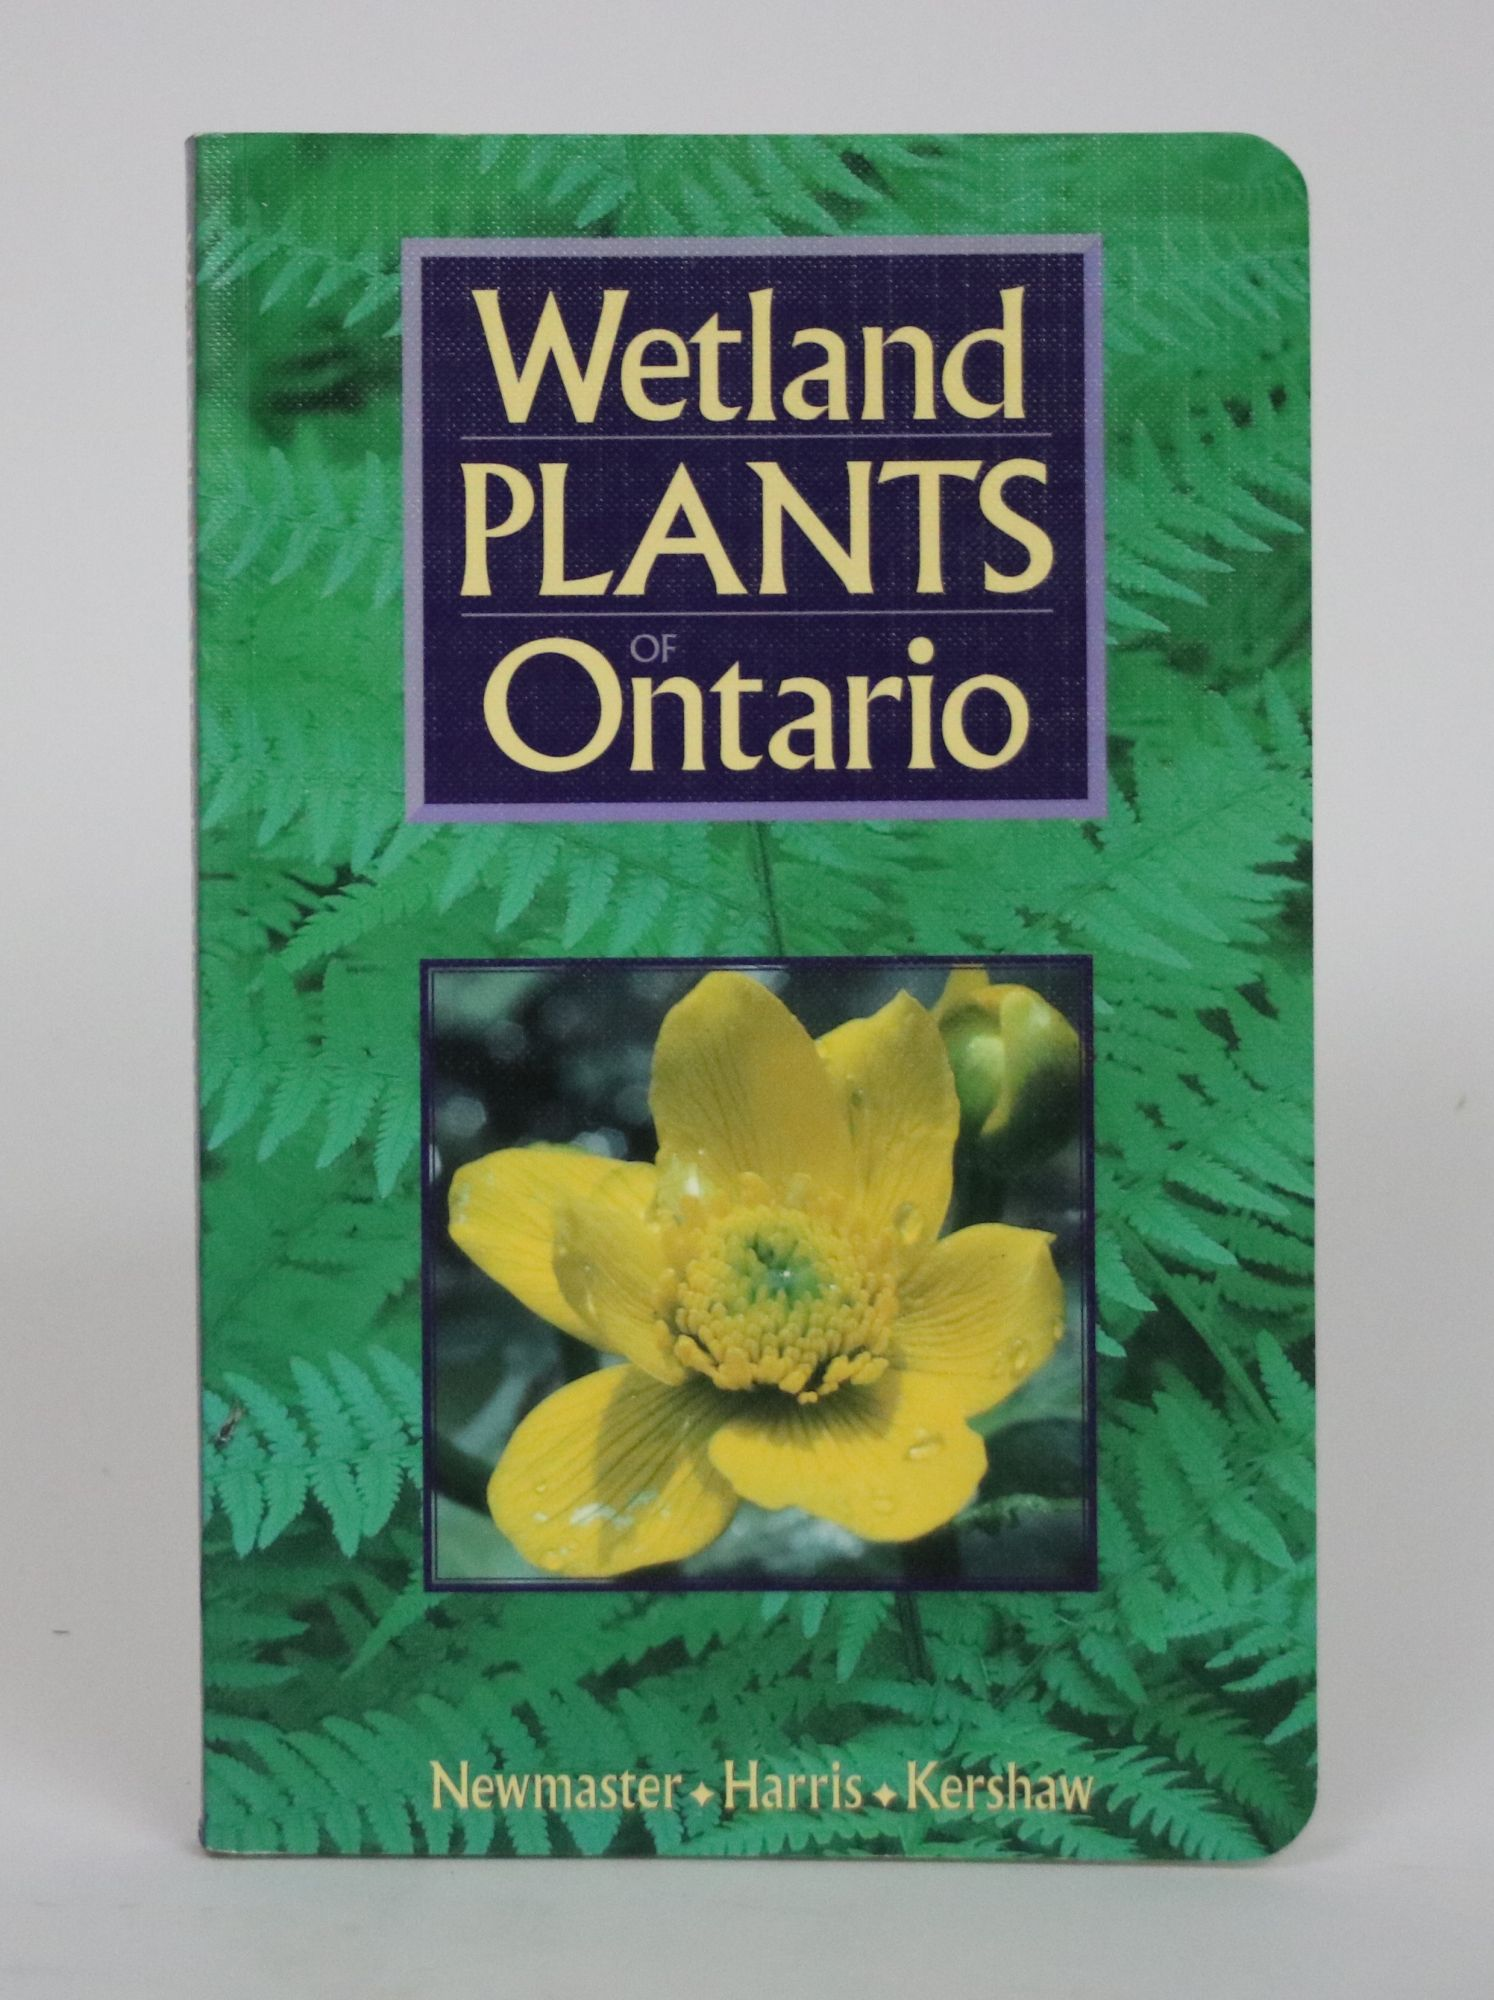 Wetland Plants of Ontario